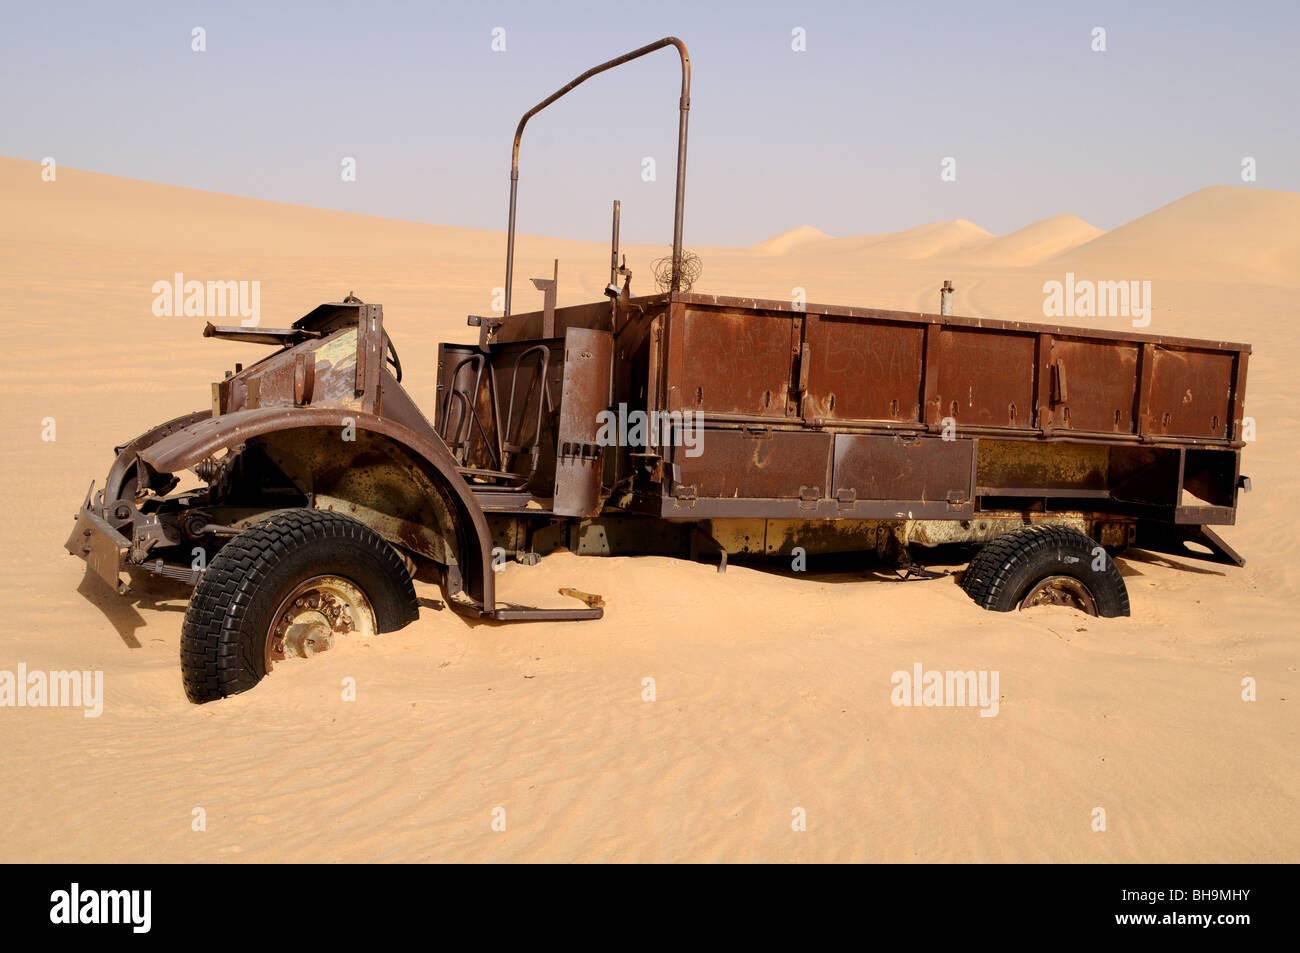 An old military vehicle of the Long Range Desert Group, an elite World War Two British army unit, in the Western - Stock Image